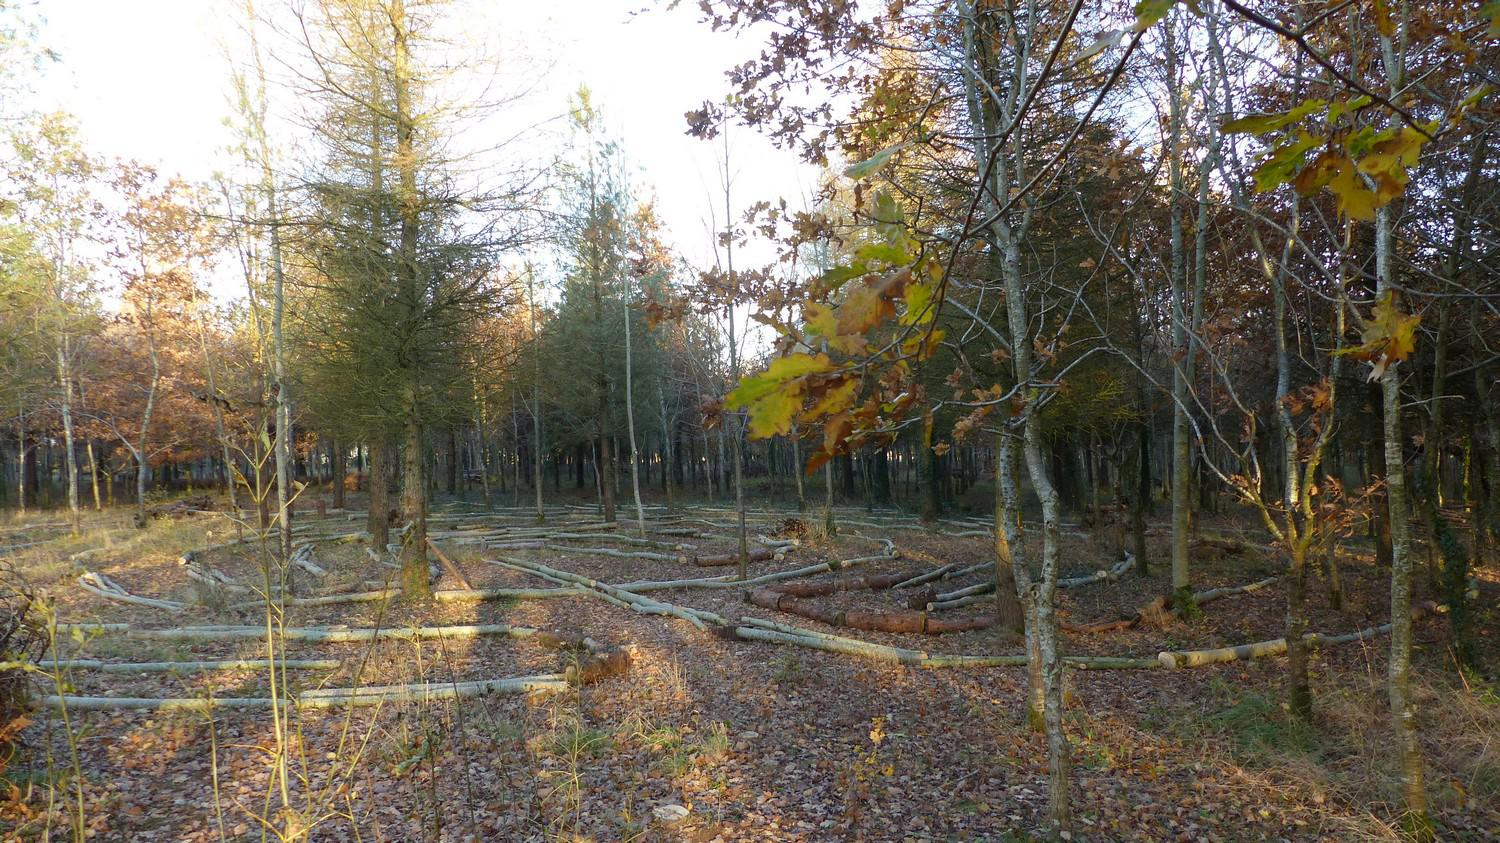 Using logs to layout the labyrinth